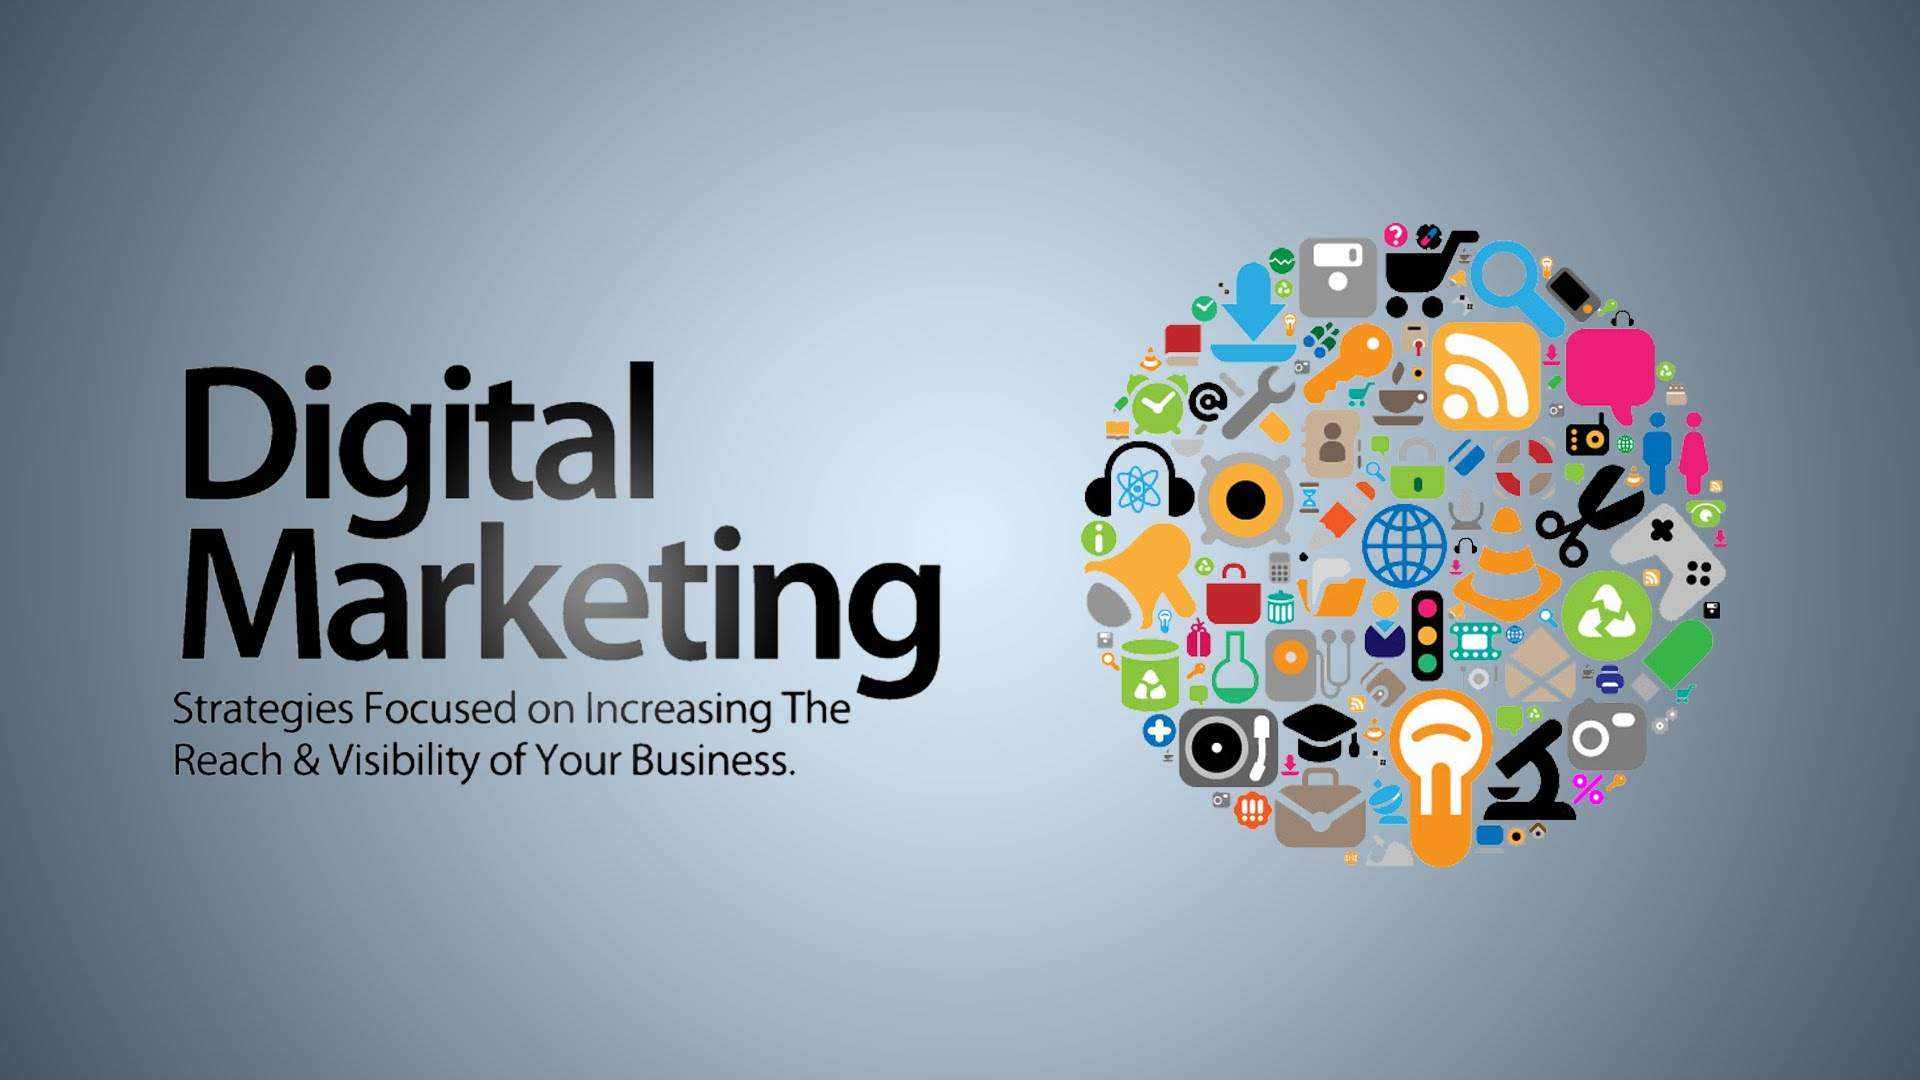 Digital Marketing - BrandYou Development